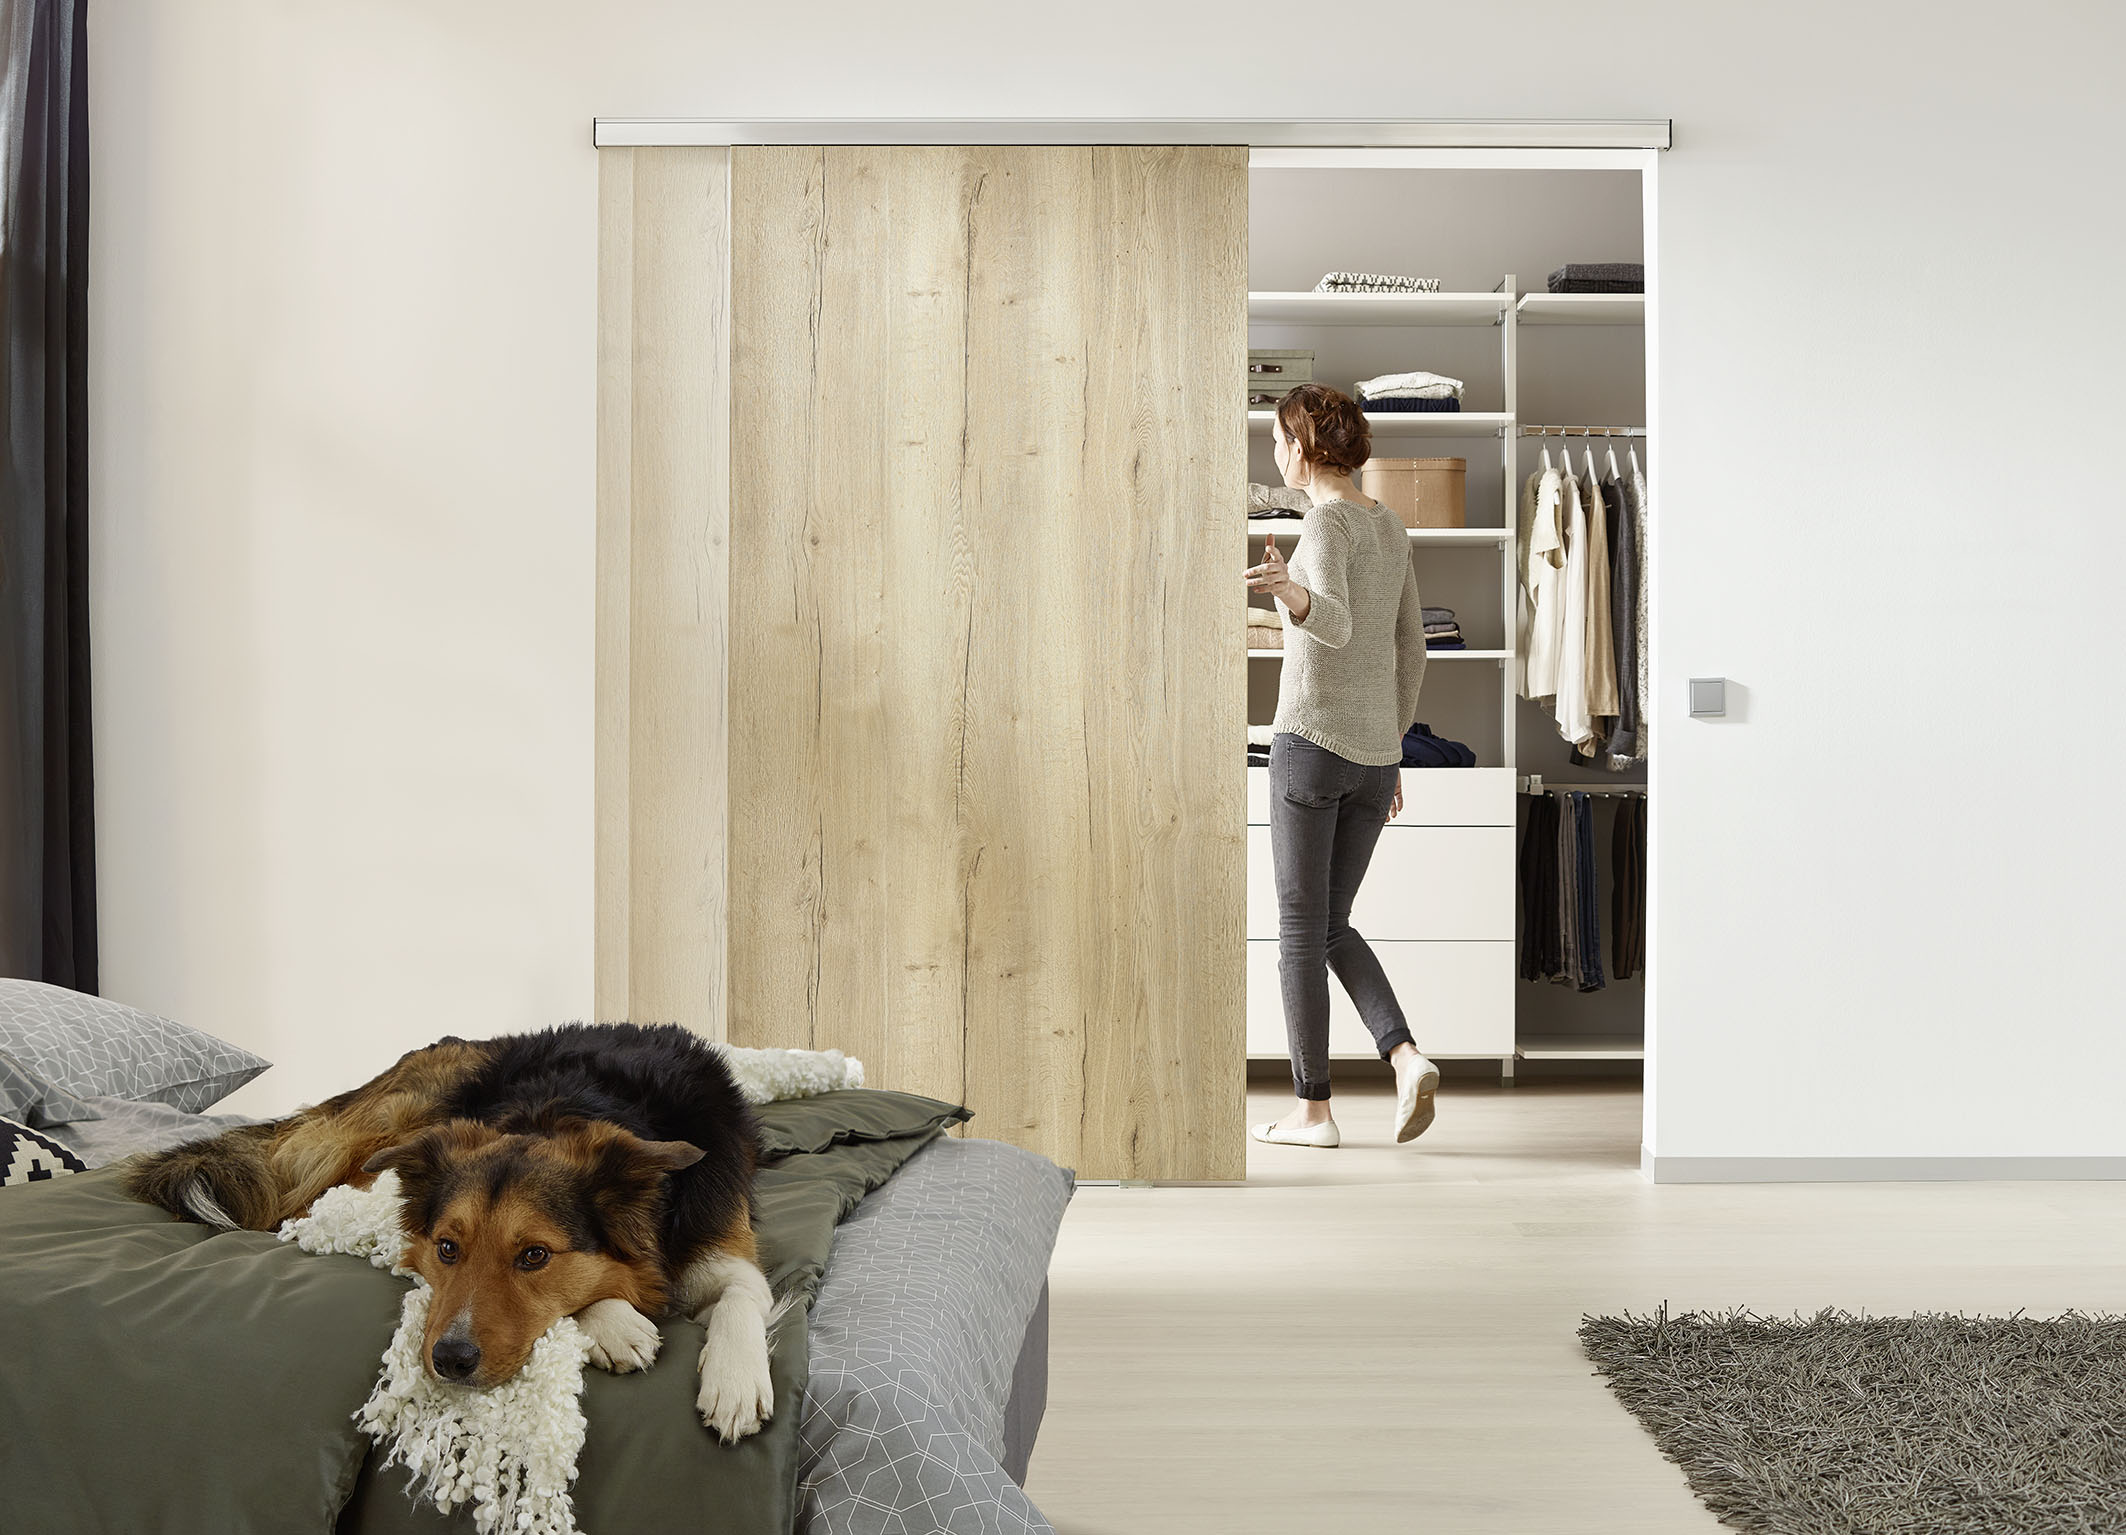 Merveilleux Closes Very Heavy Doors In Complete Silence: The First Soft Stop System For  Doors Weighing Up To 325 Lbs. Photo: Hettich